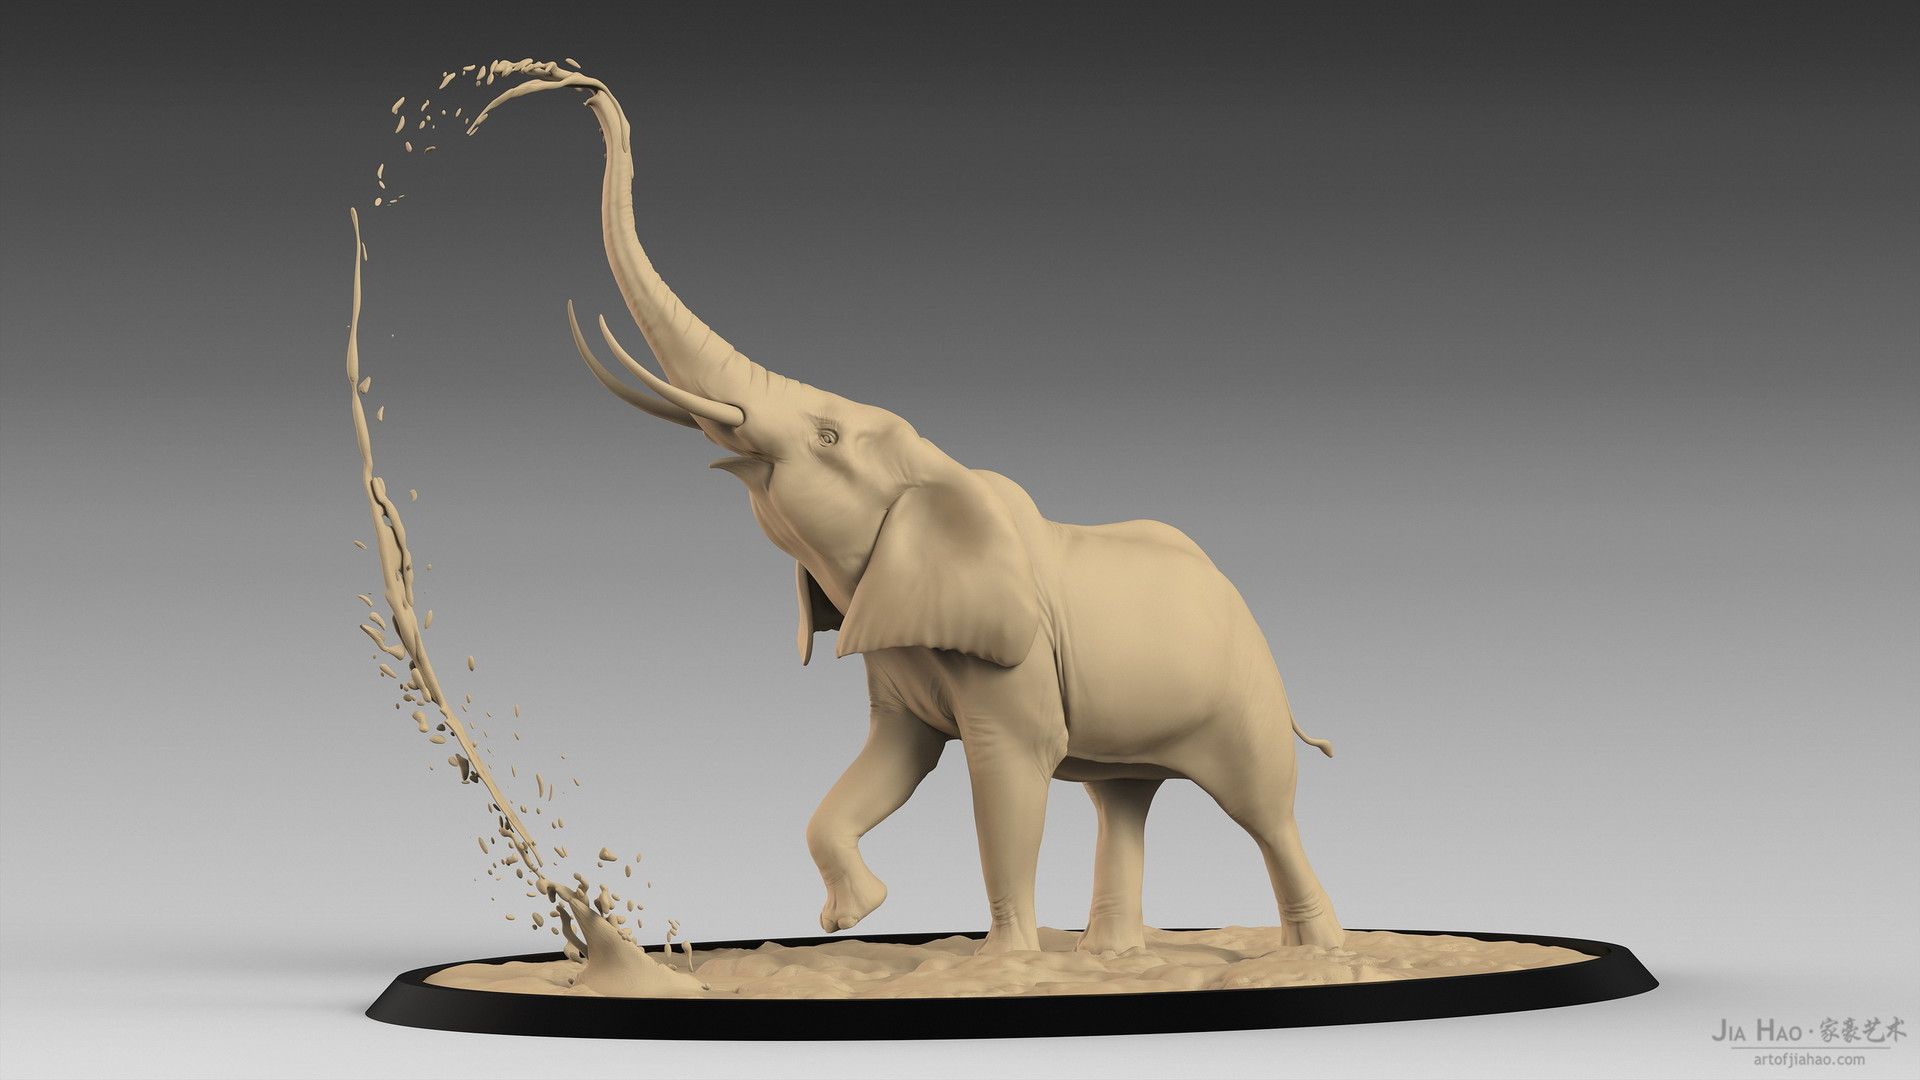 Jia hao africanelephant digitalsculpturea 01